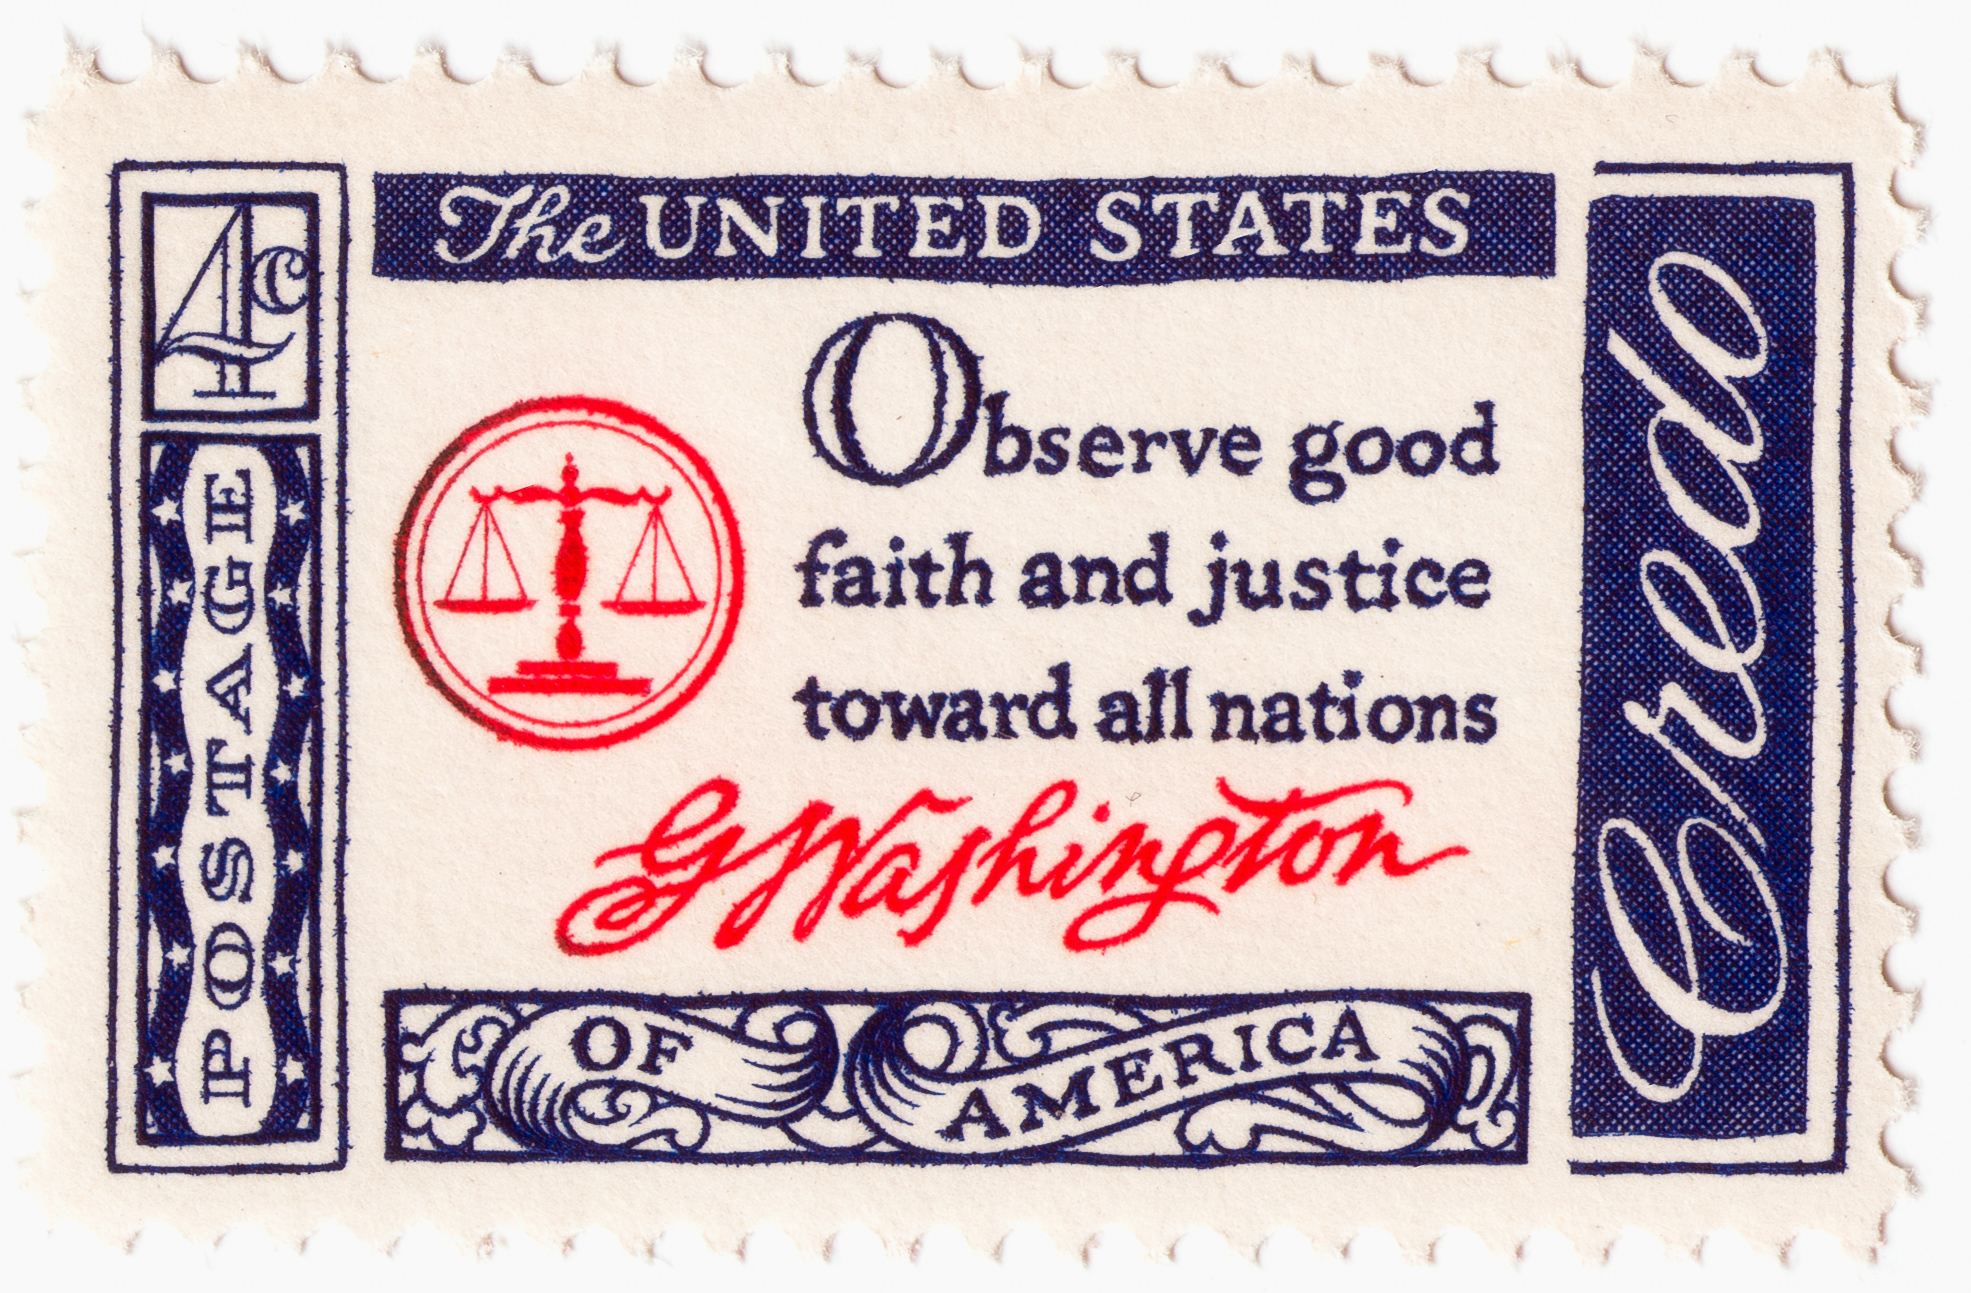 Observe good faith... (1960)